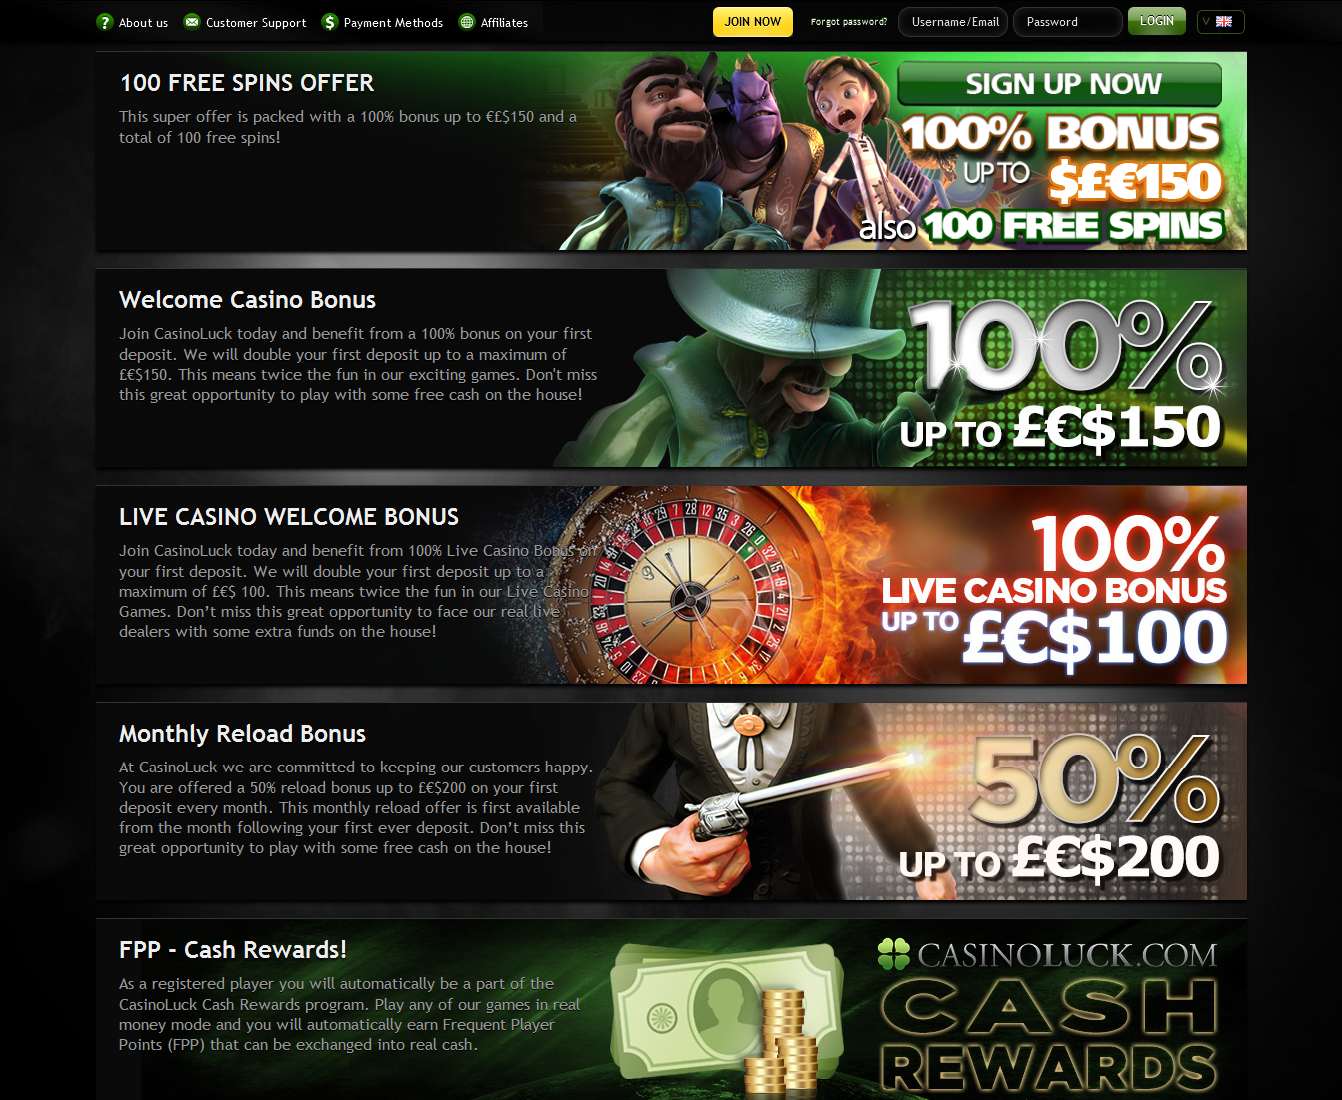 Casino Luck promotions